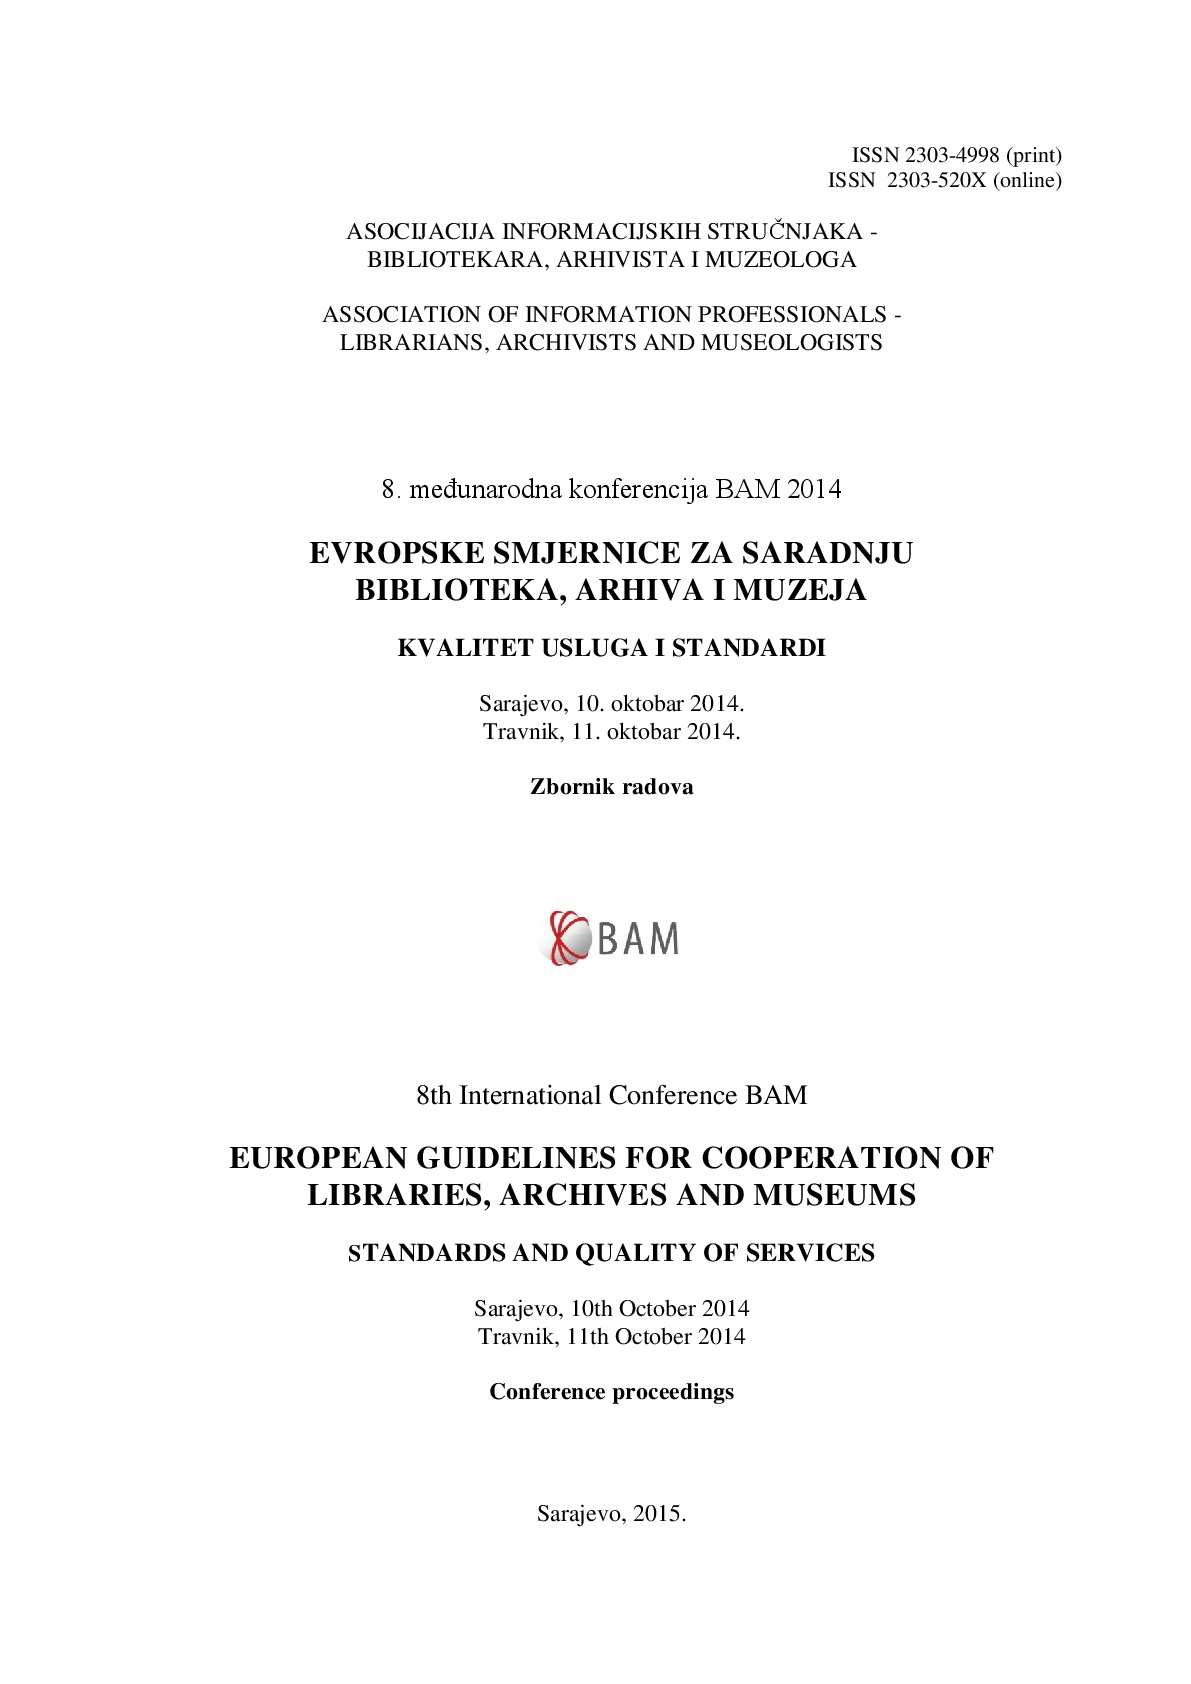 Achieving Quality and Impact for Europe's Library Collections